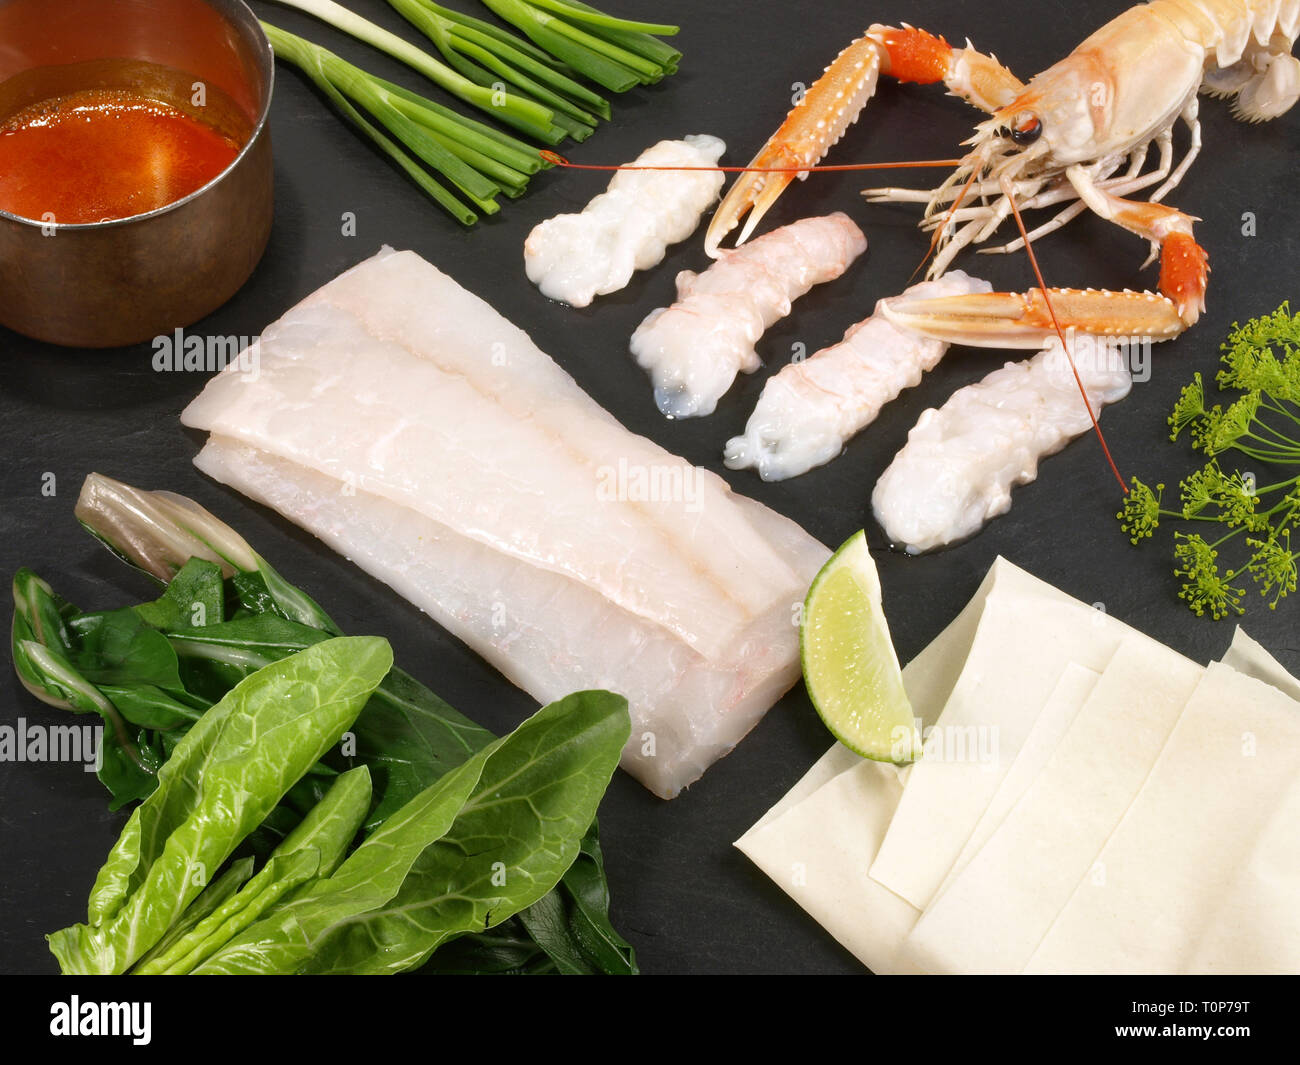 Turbot Fillet - Fish Flatfish - Stock Image